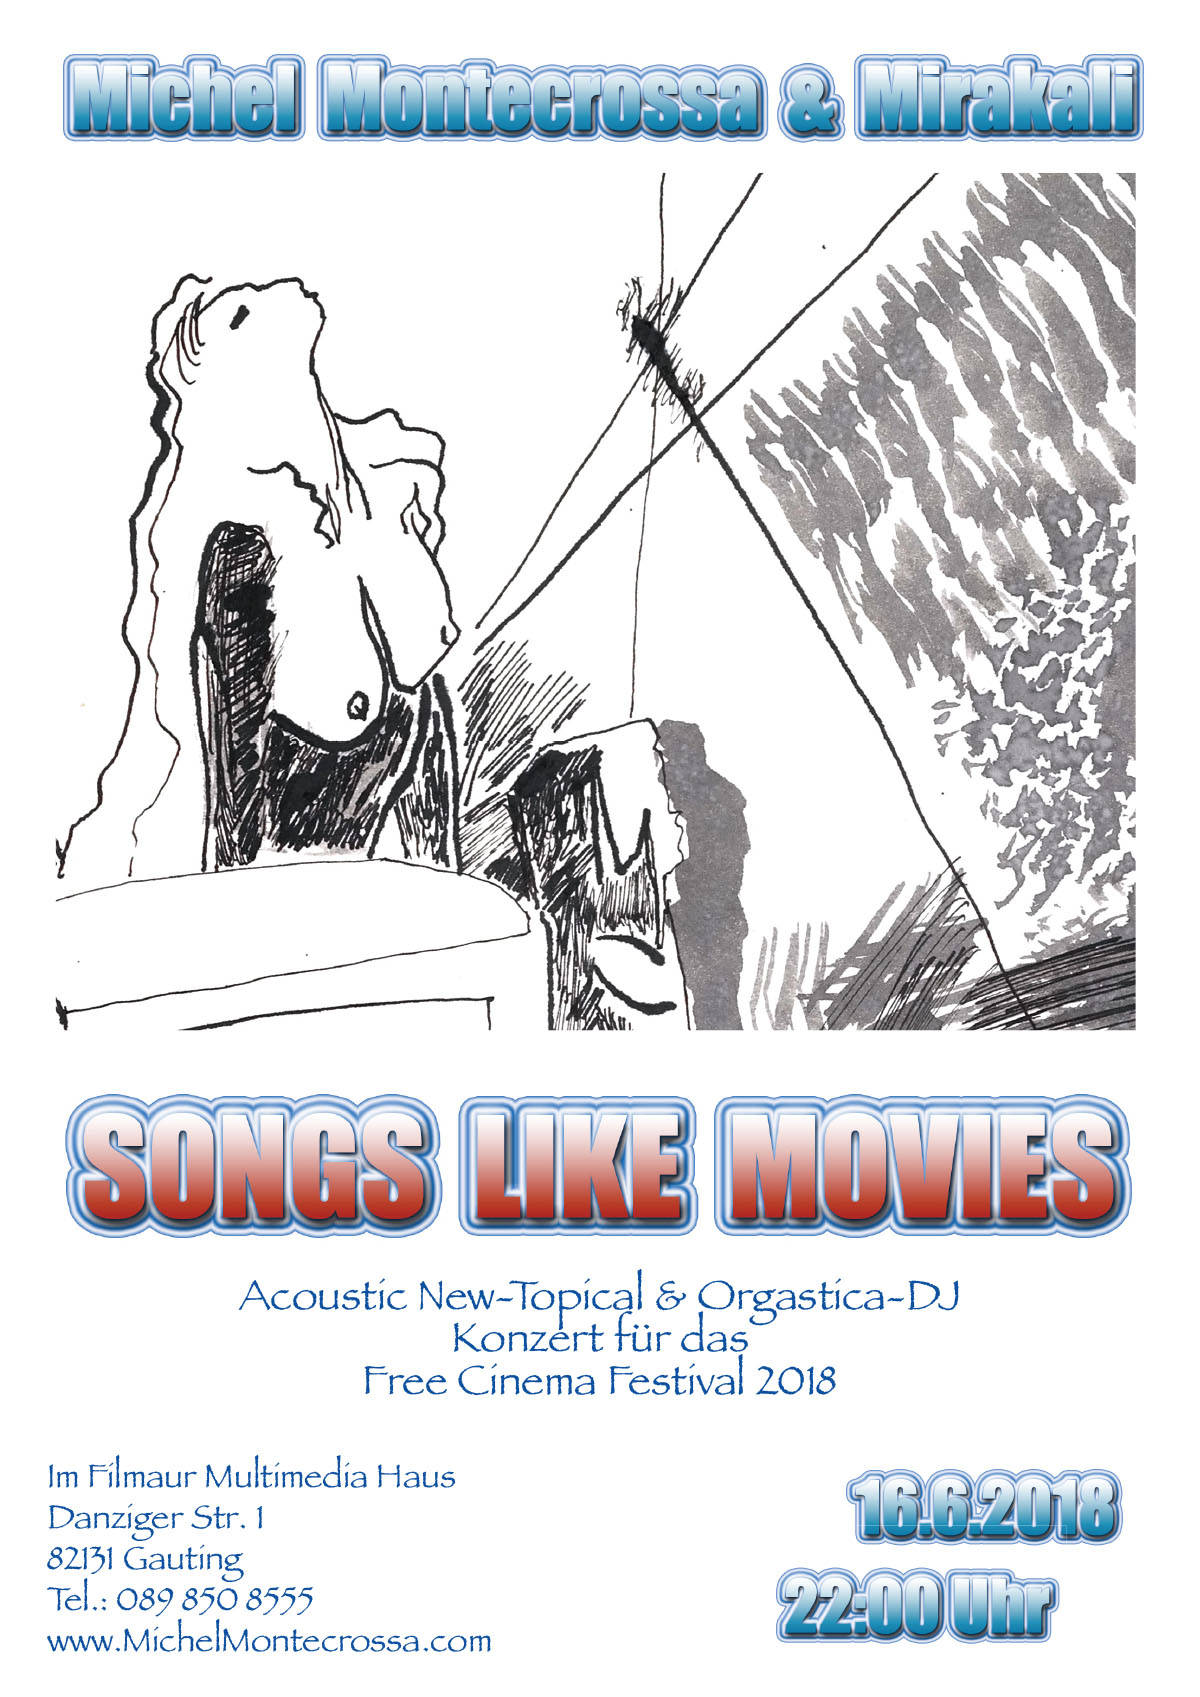 'Songs Like Movies' Concert with Michel Montecrosa & Mirakali